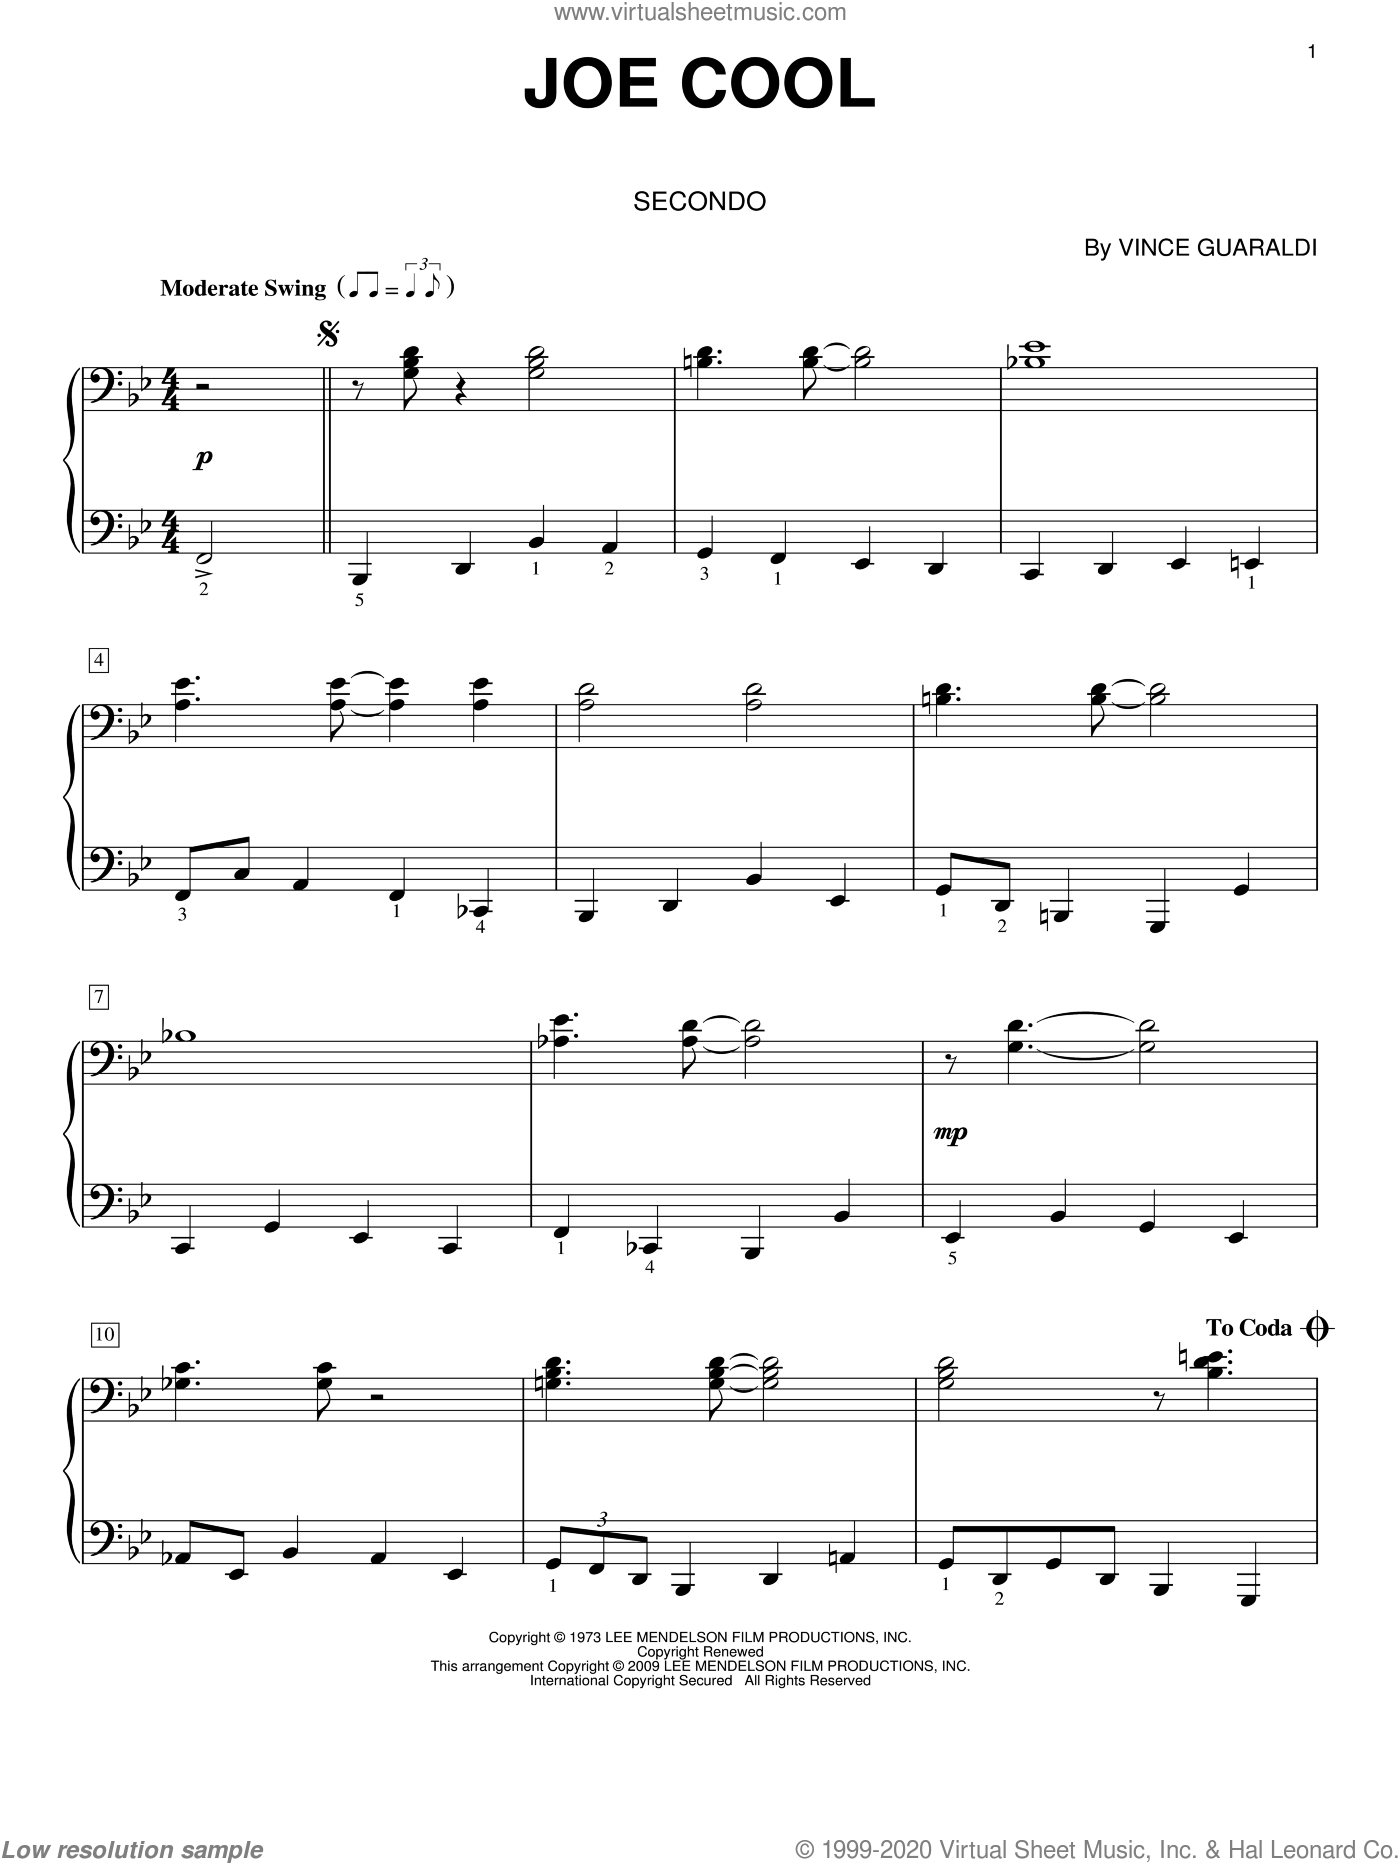 Joe Cool sheet music for piano four hands (duets) by Vince Guaraldi, intermediate piano four hands. Score Image Preview.